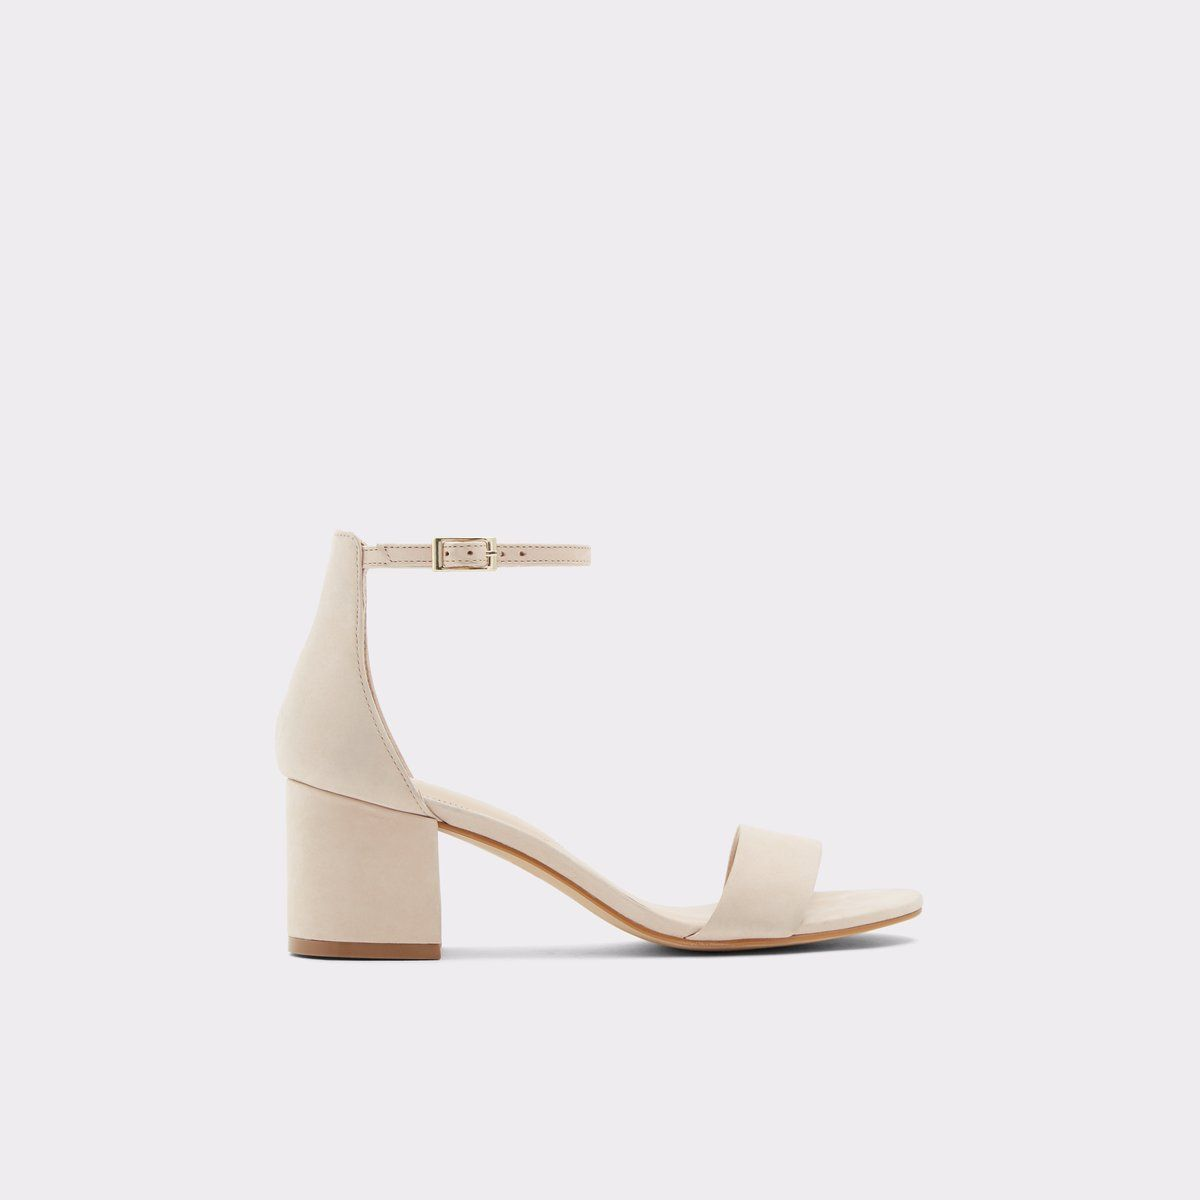 083333fd2f7 Villarosaw We thoughtfully expanded our collection to include wide width  shoes and heels